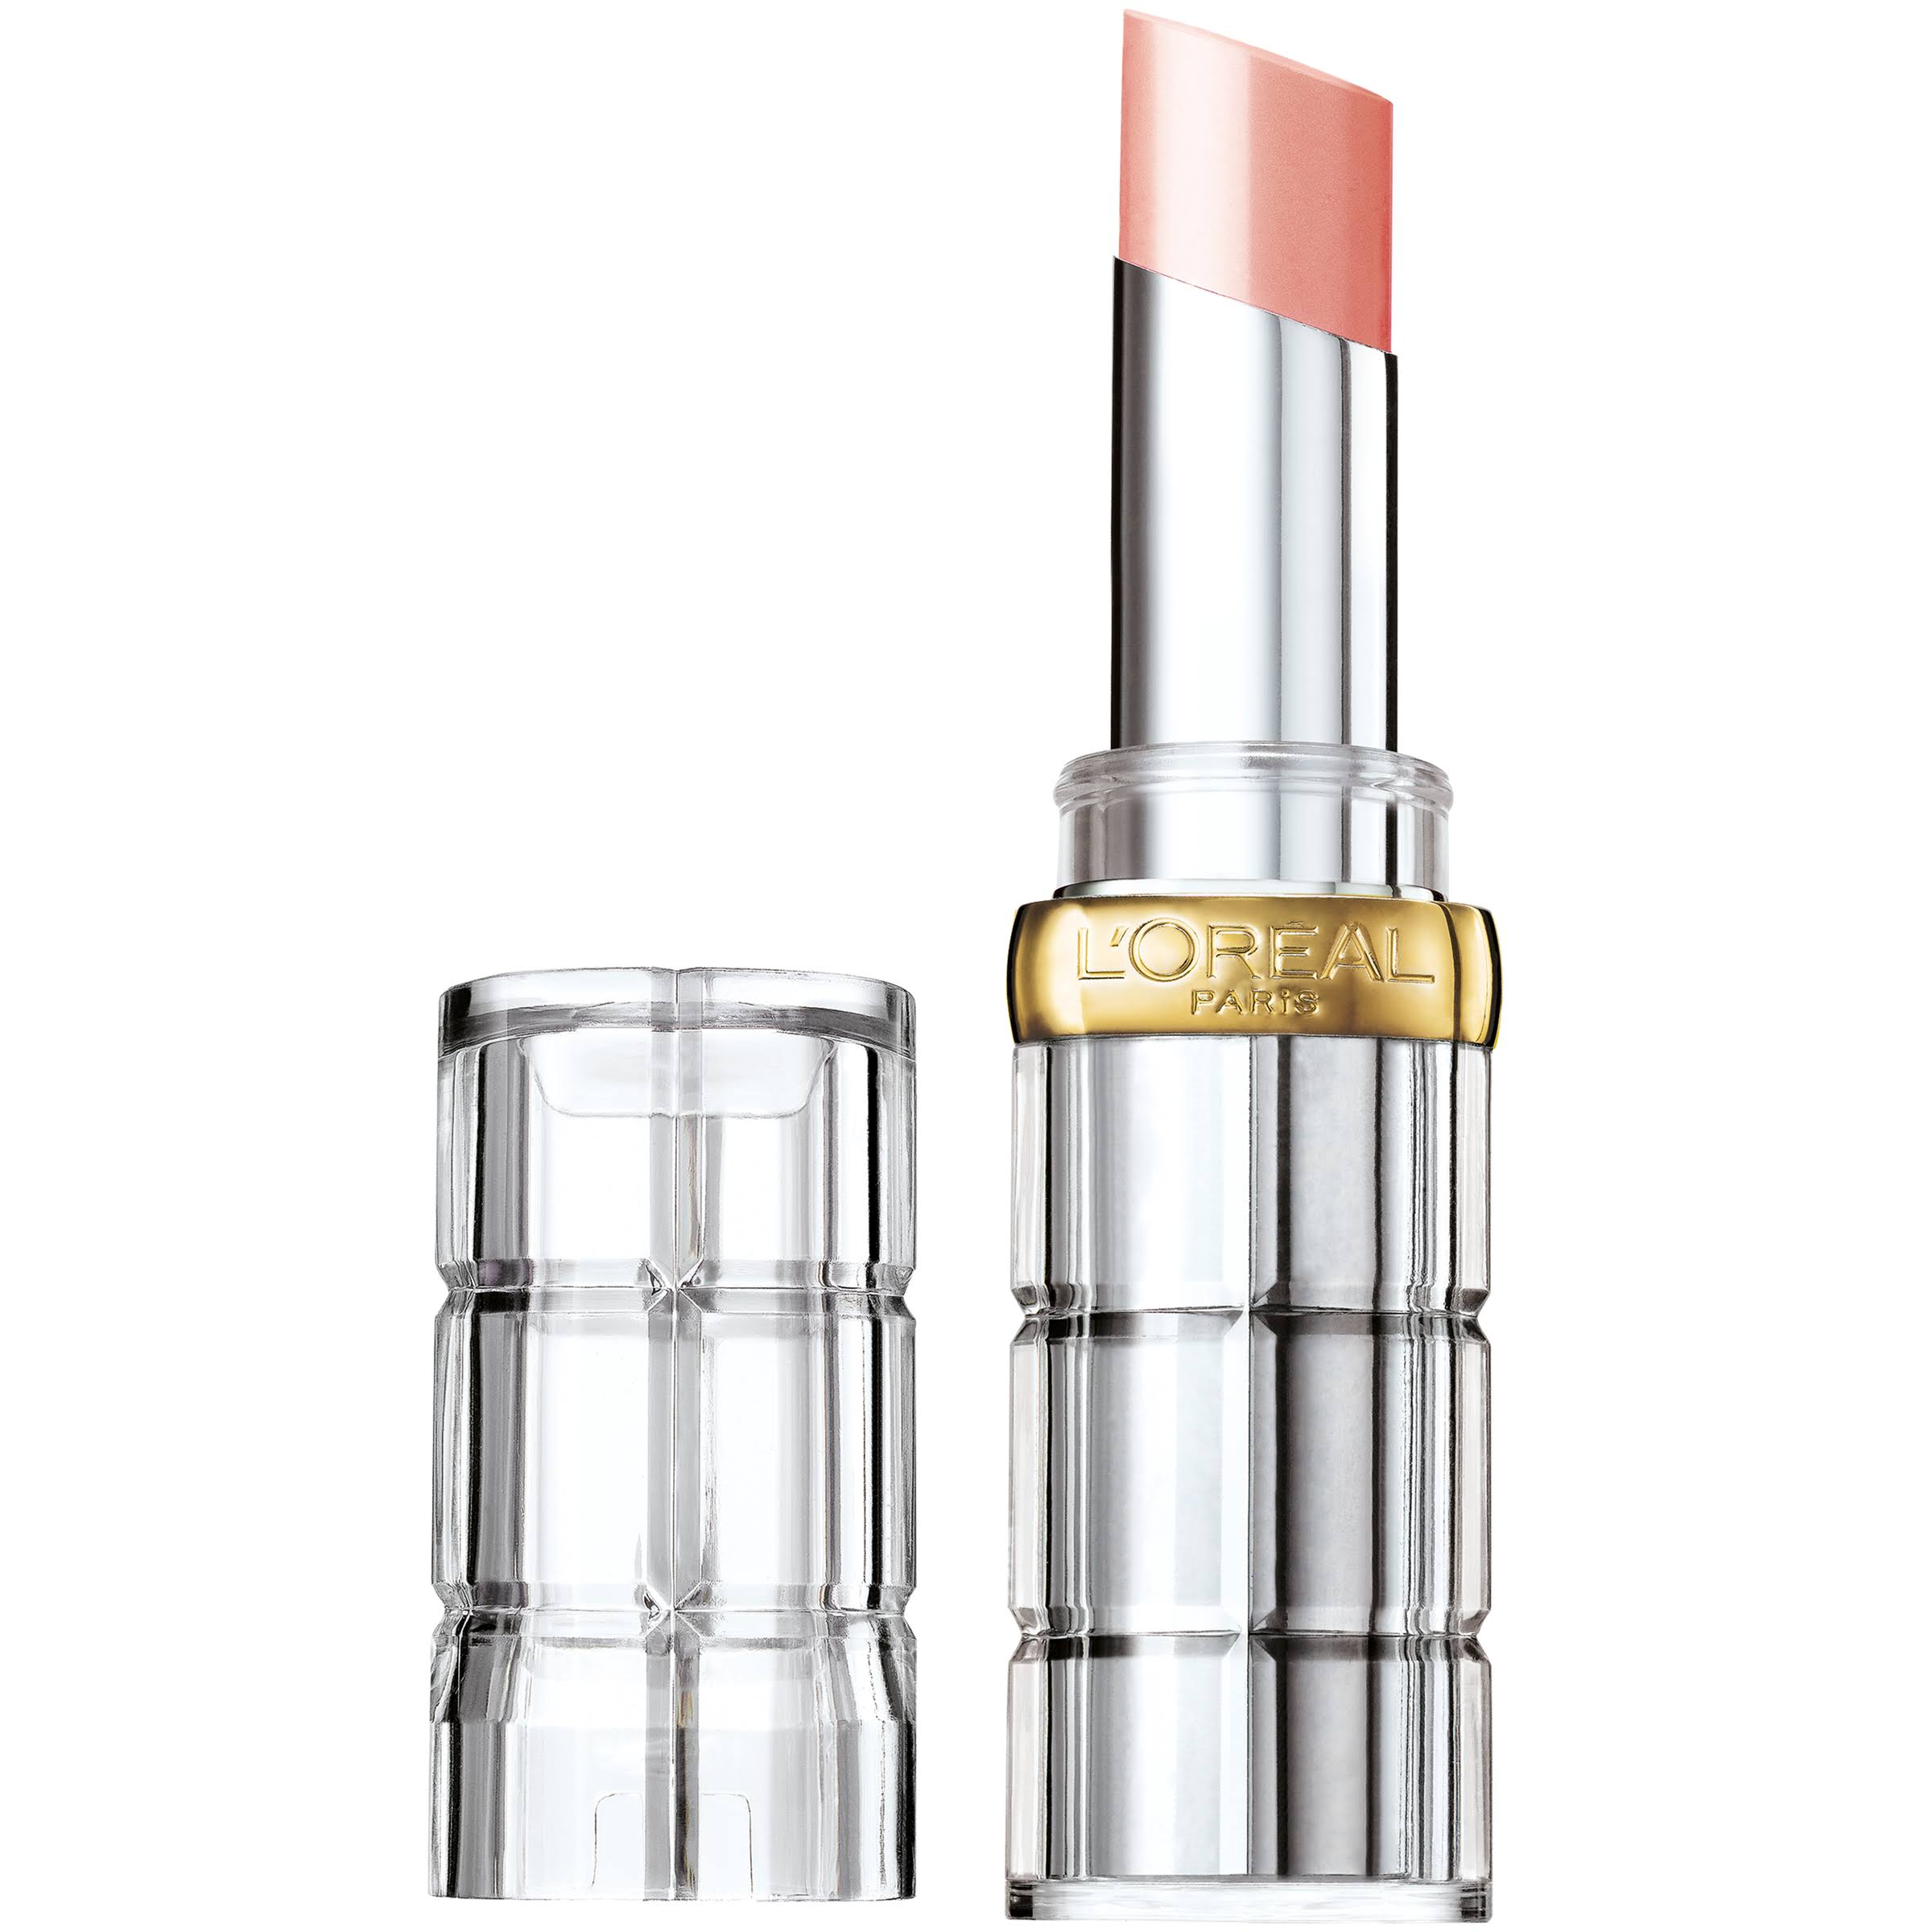 L'Oréal Paris Colour Riche Shine Lipstick - 910 Shining Peach, 0.1oz